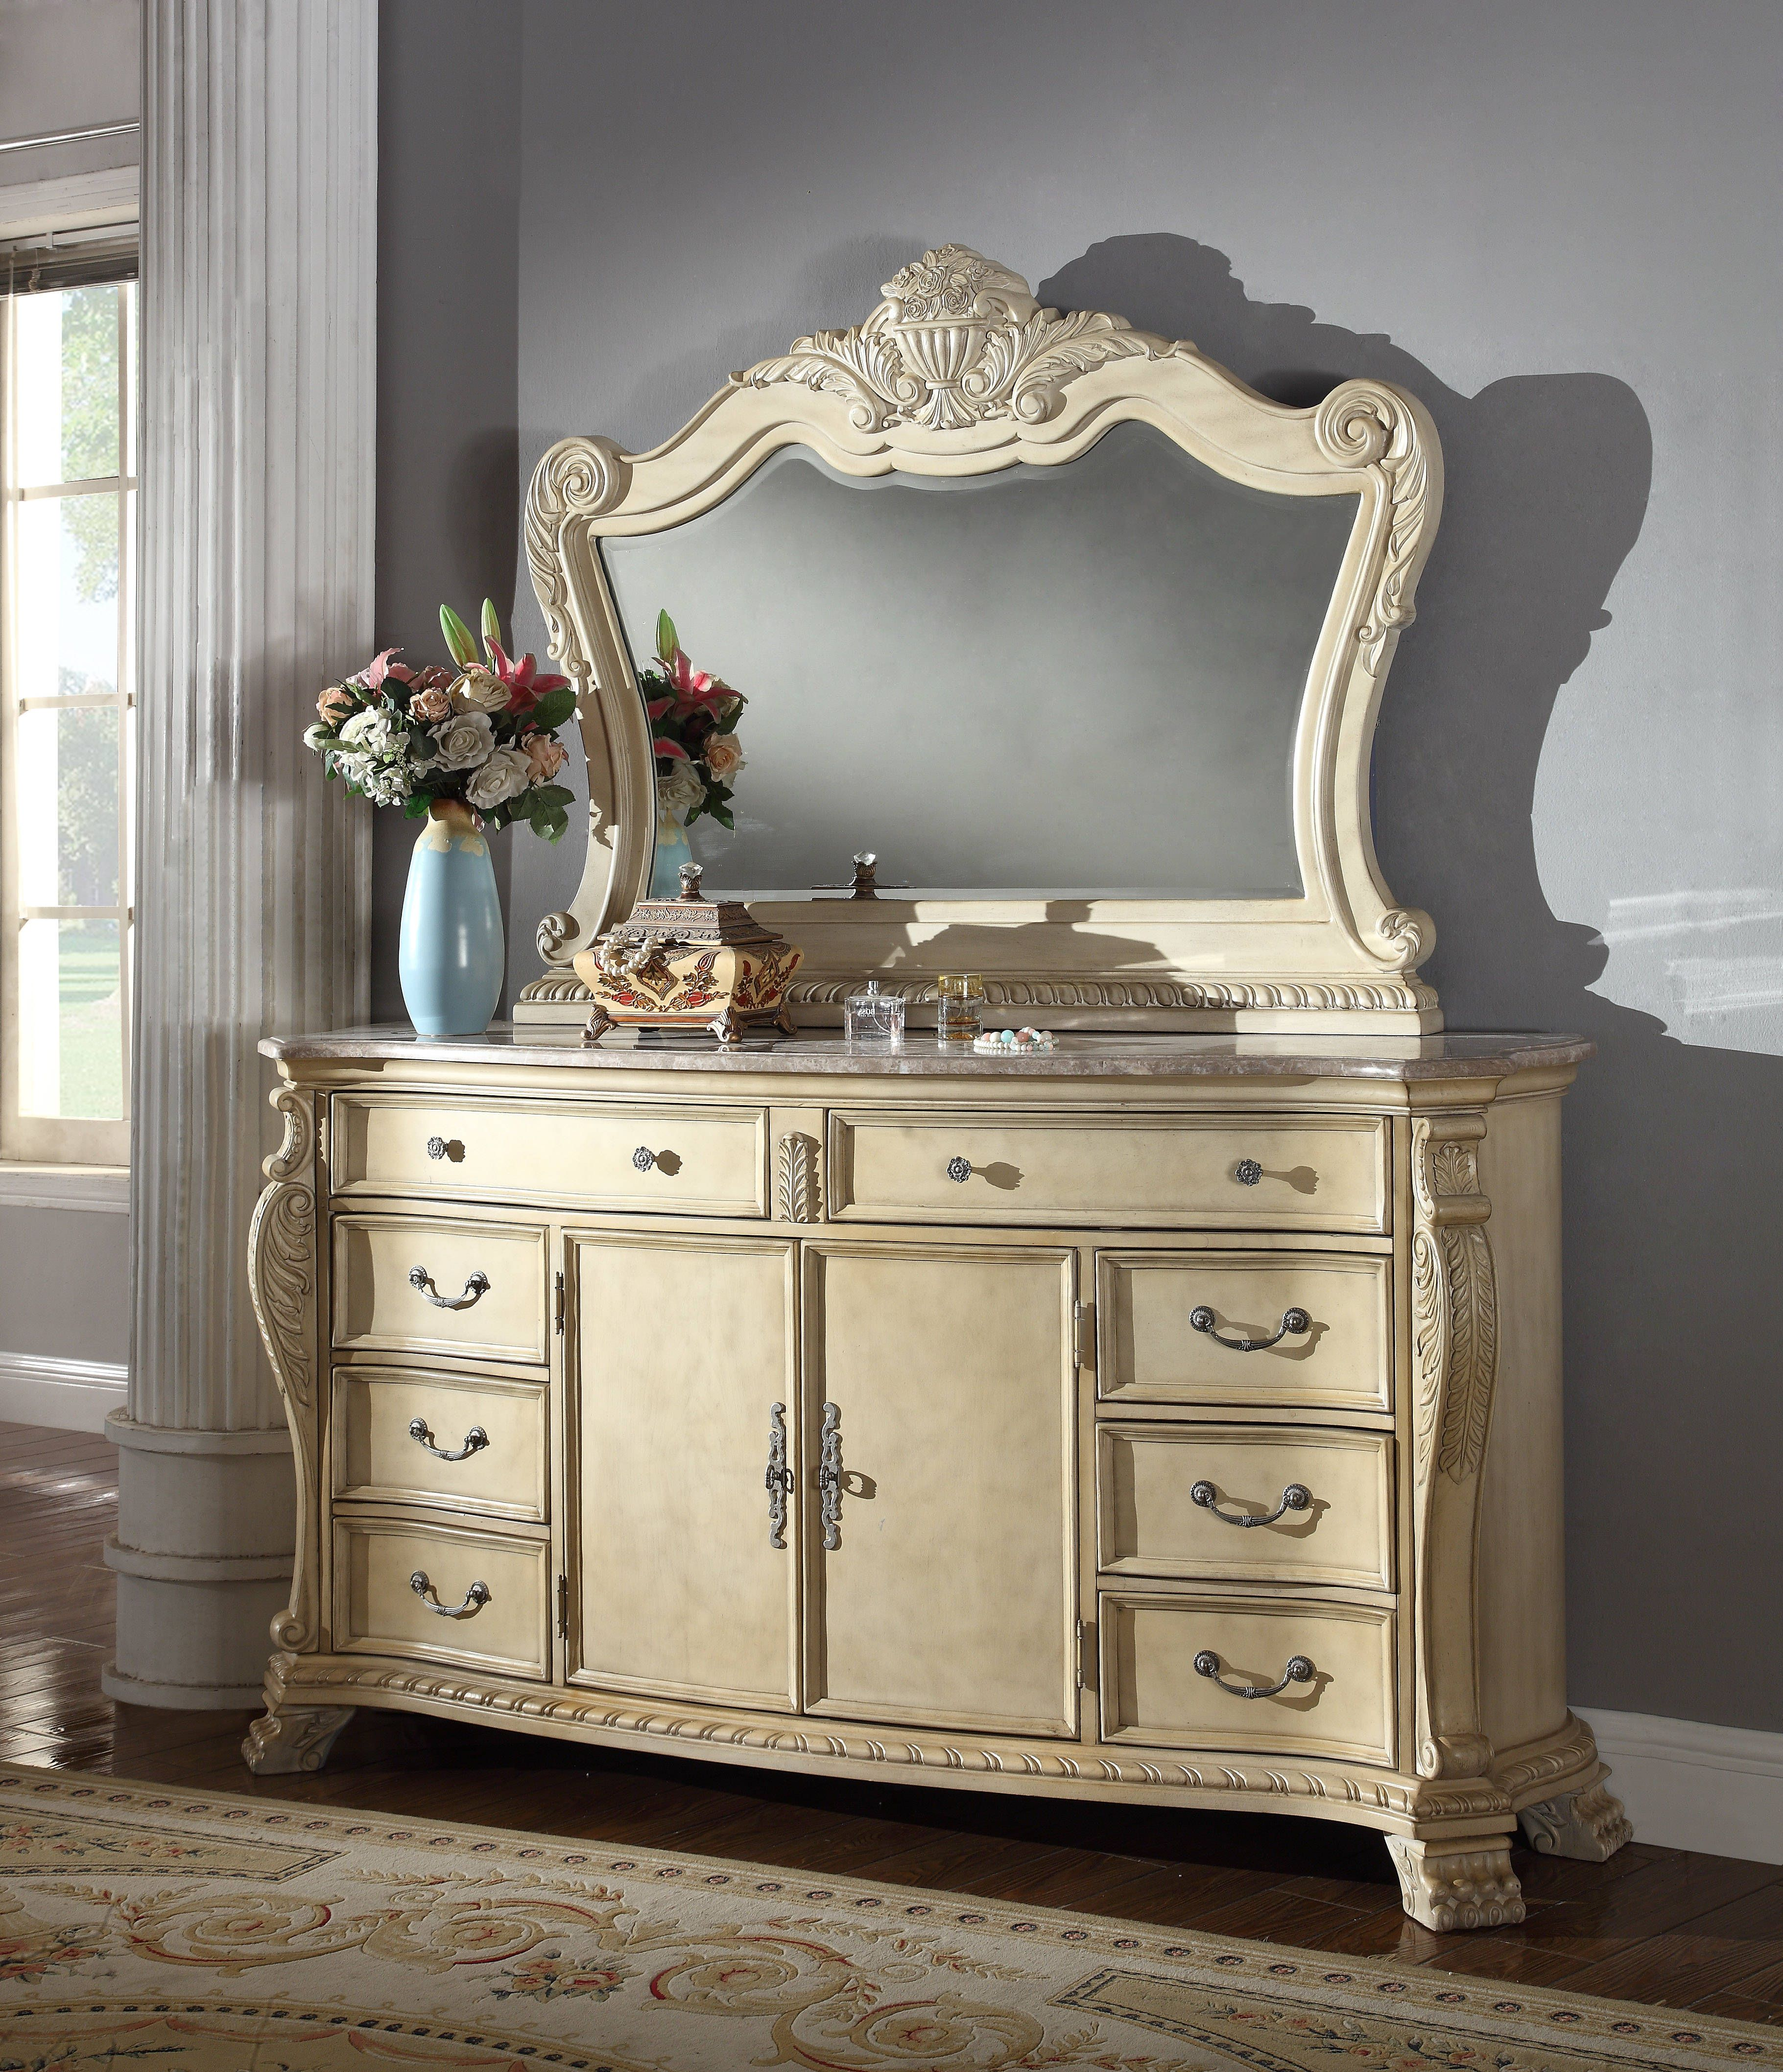 Monaco Traditional Antique White Marble Top Dresser and